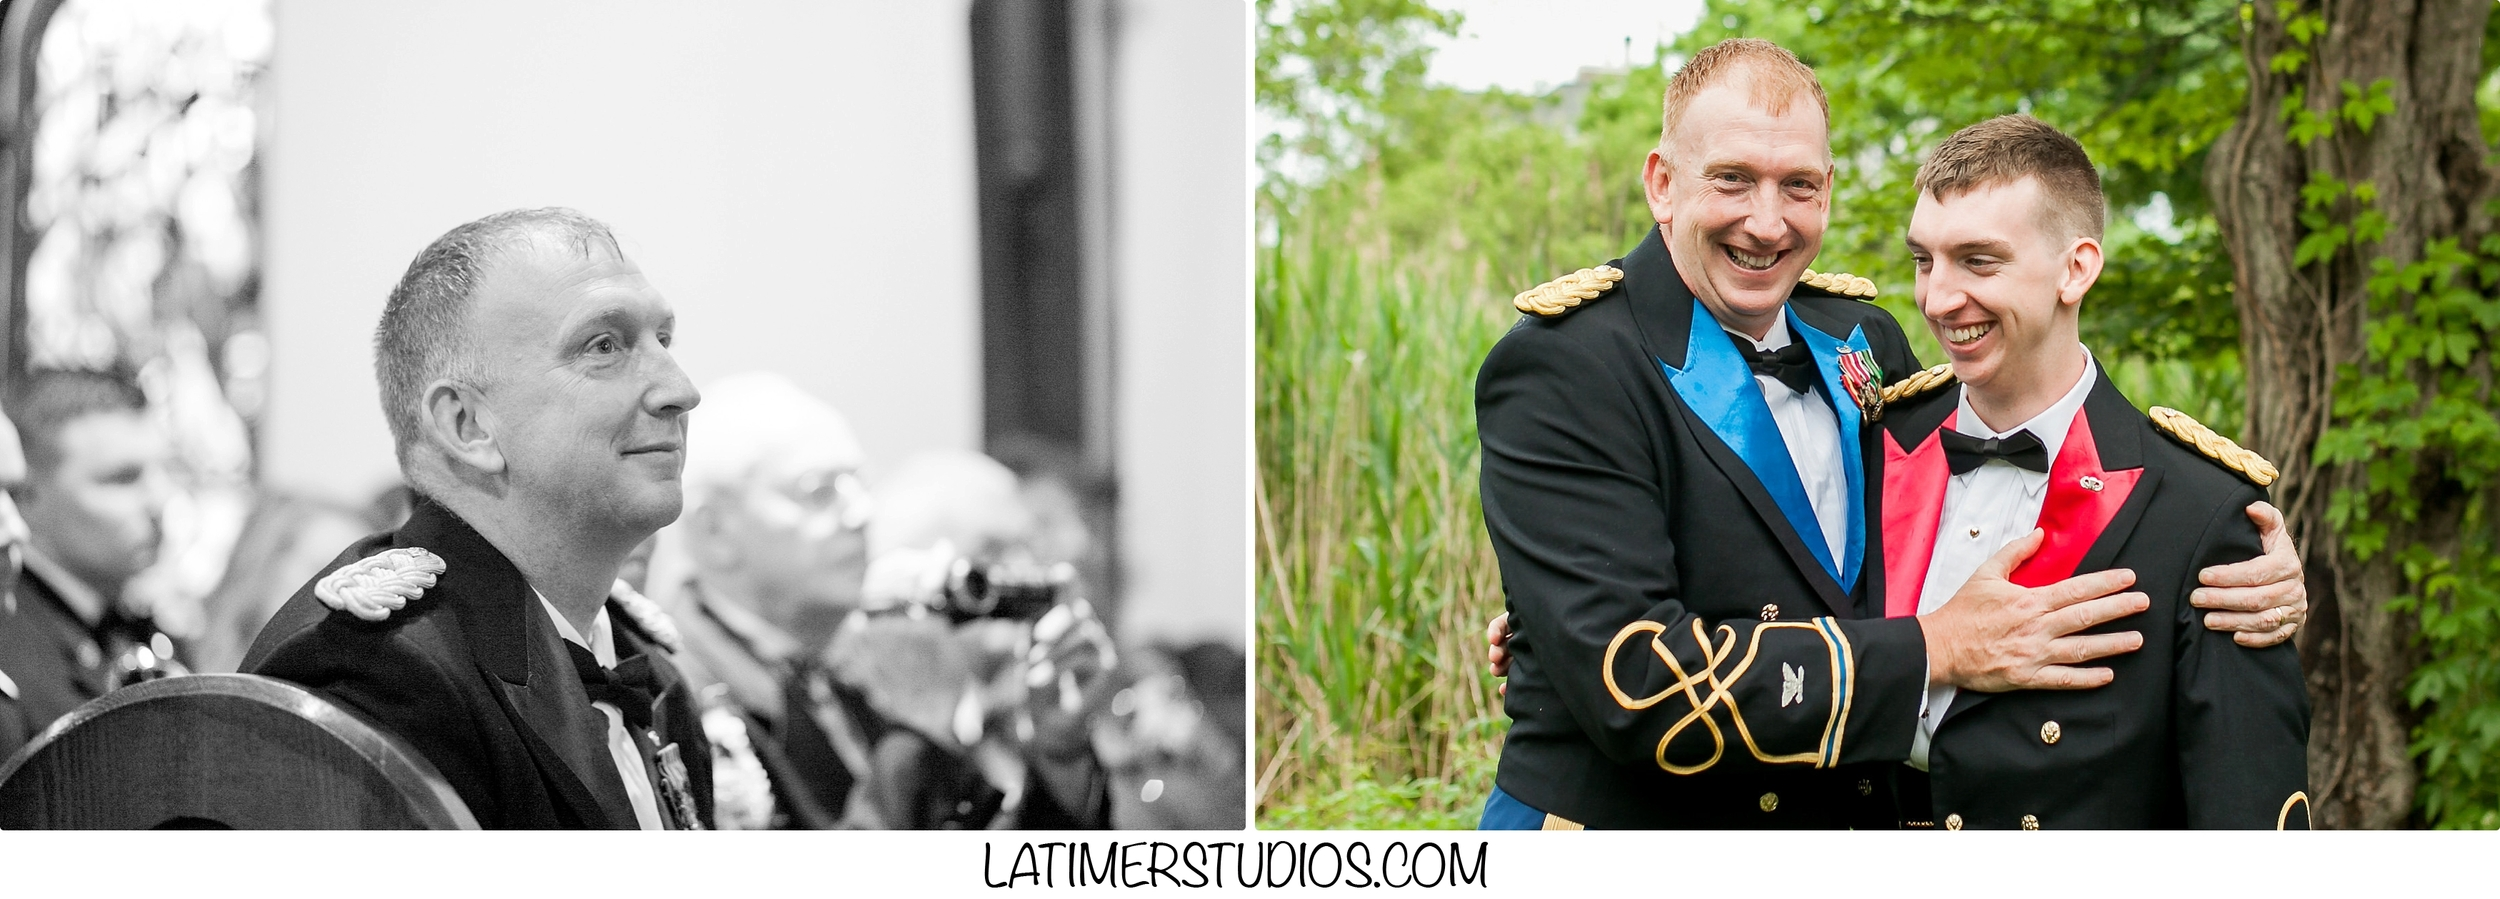 Latimer Studios Photography capturing father and son at St. Andrews by the Sea in New Castle NH